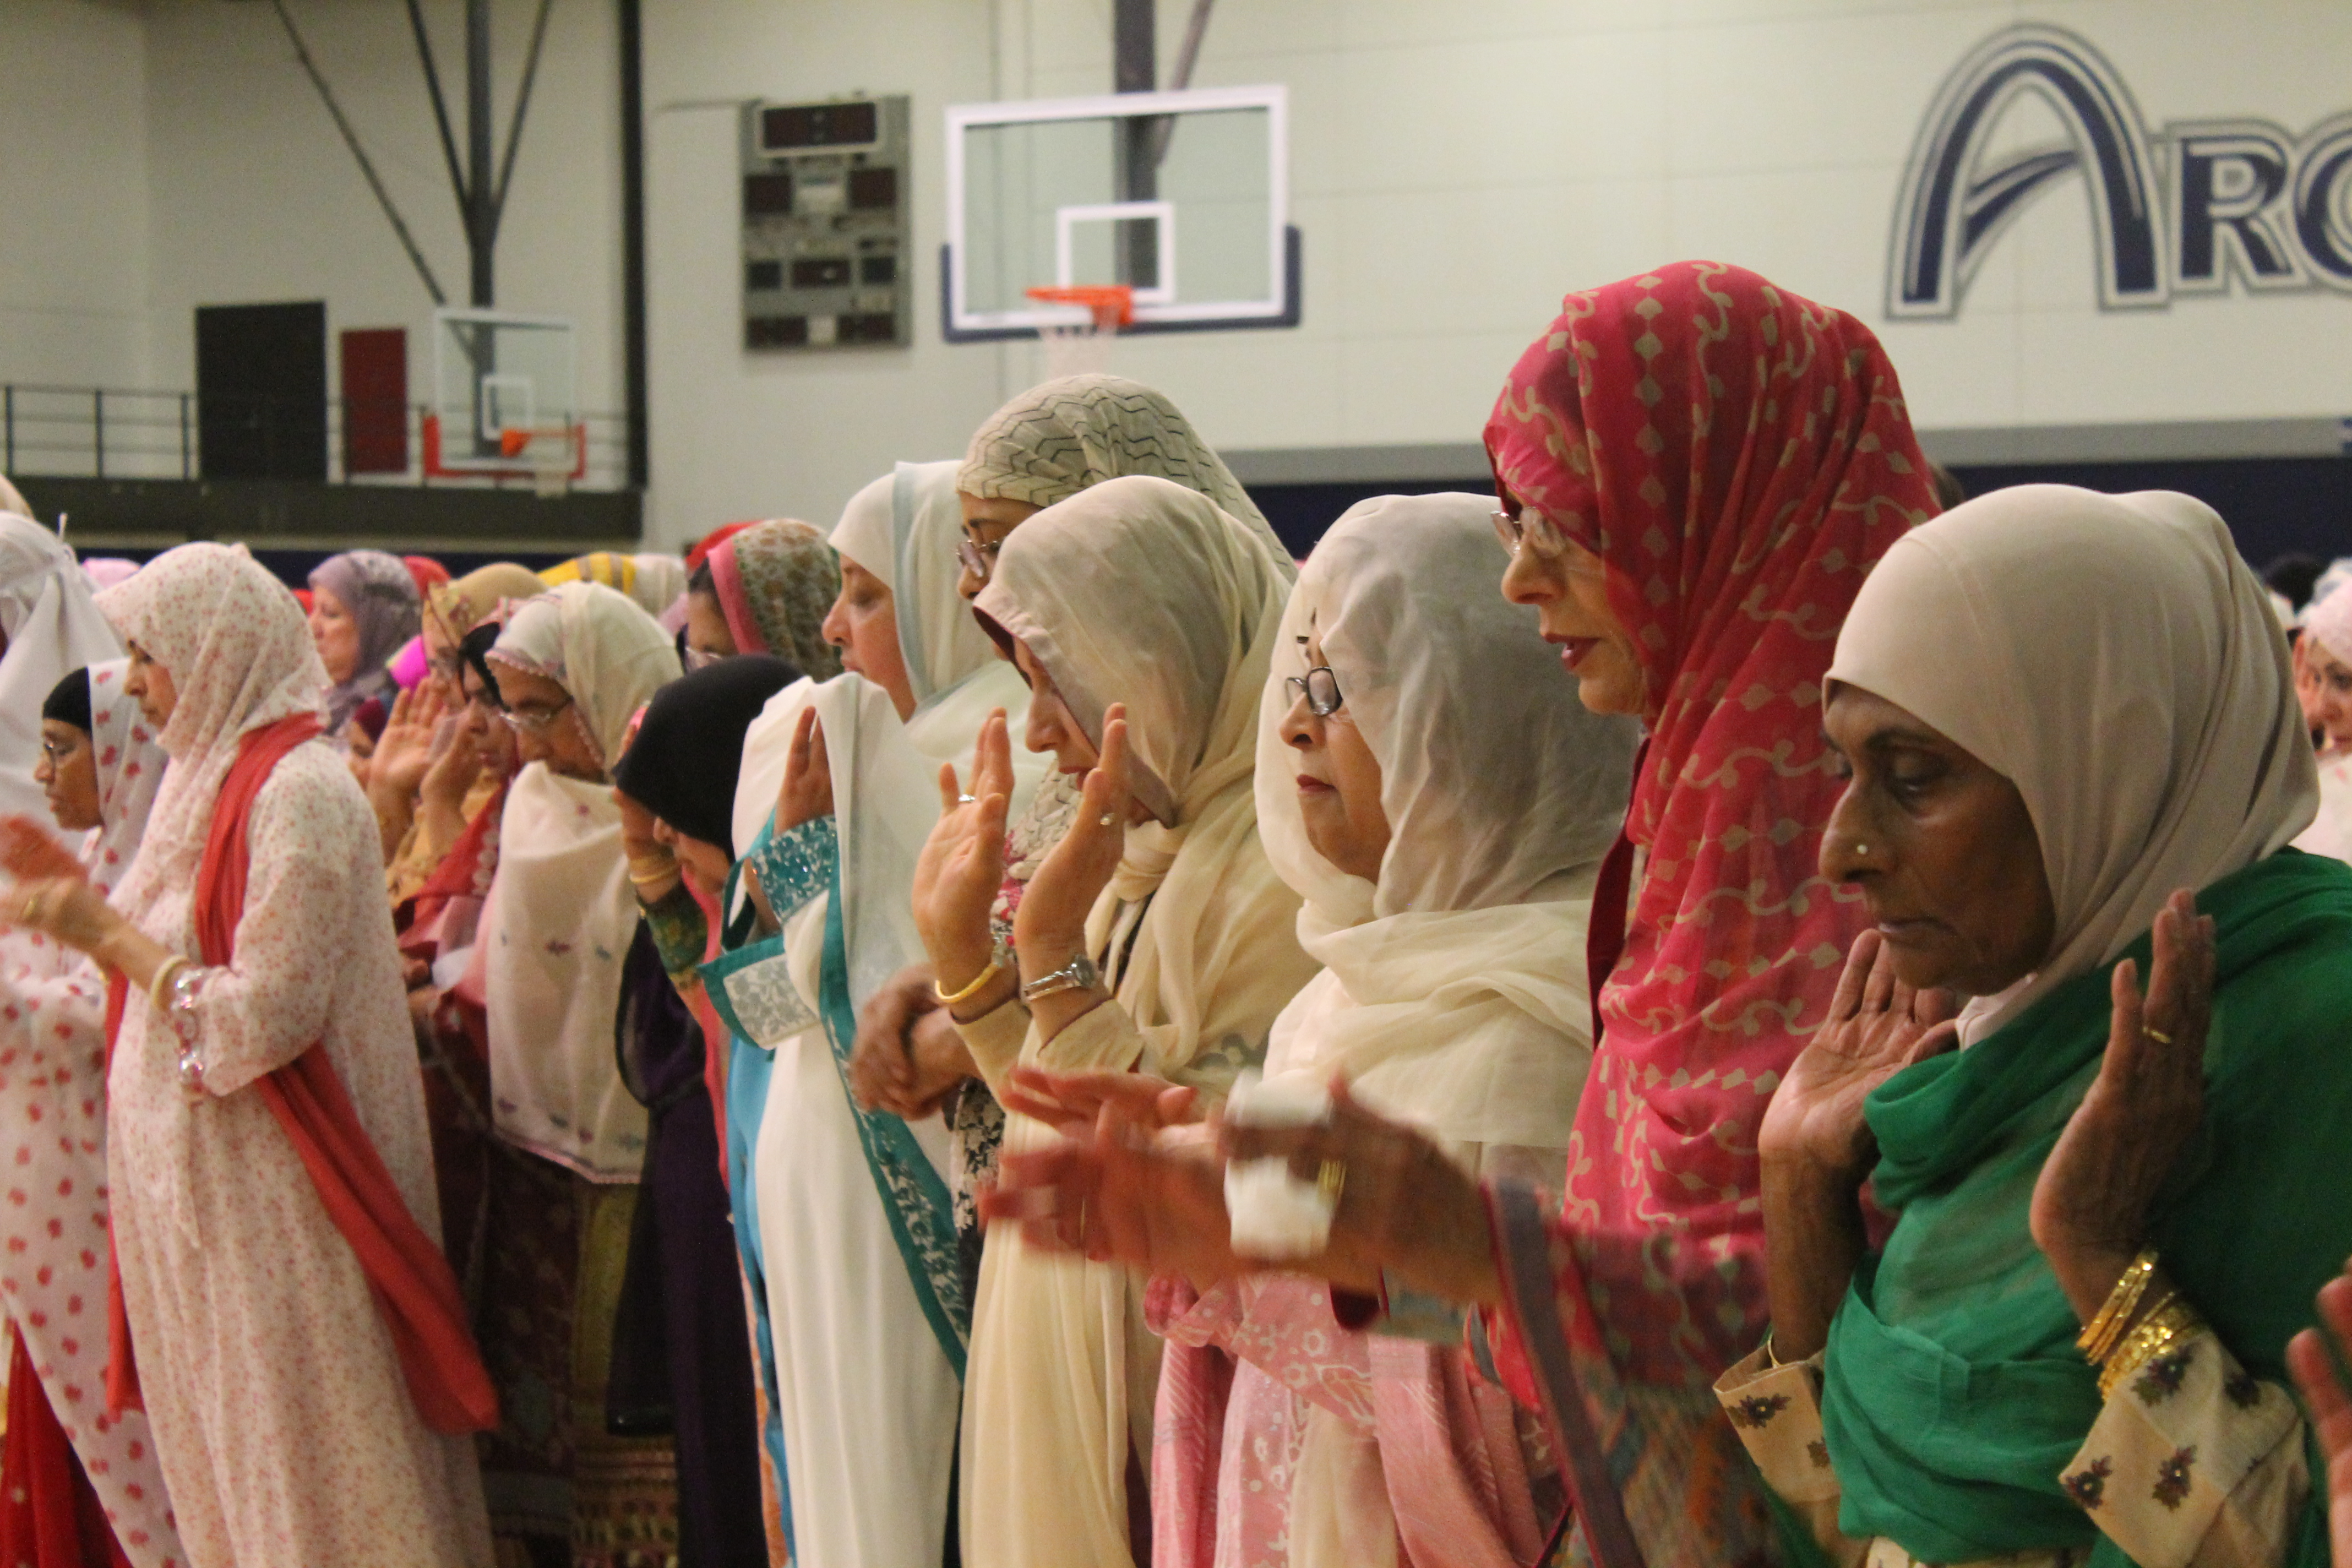 St louis muslims recall their first fasts during ramadan st stephanie lecci st louis public radio kristyandbryce Images